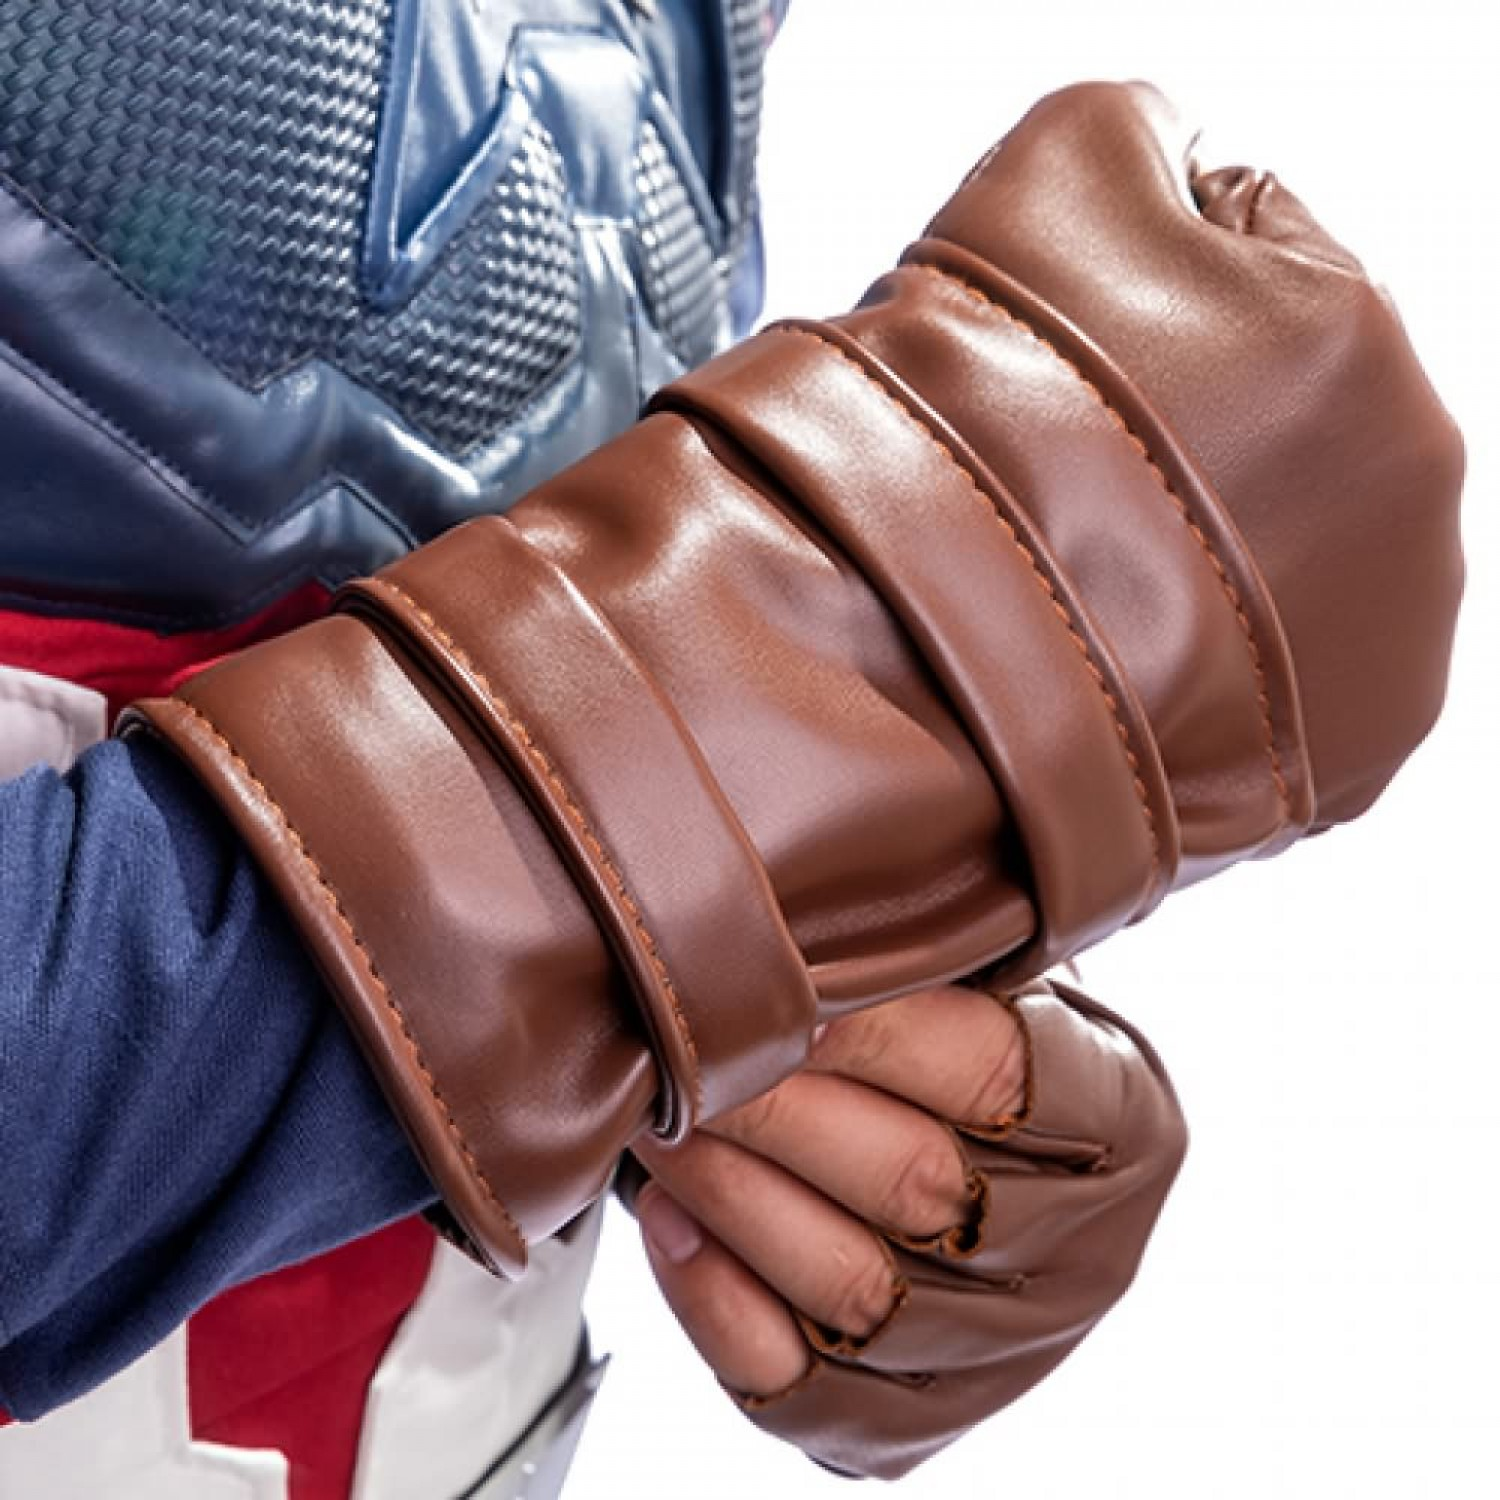 Avengers Endgame Captain America Cosplay Costume